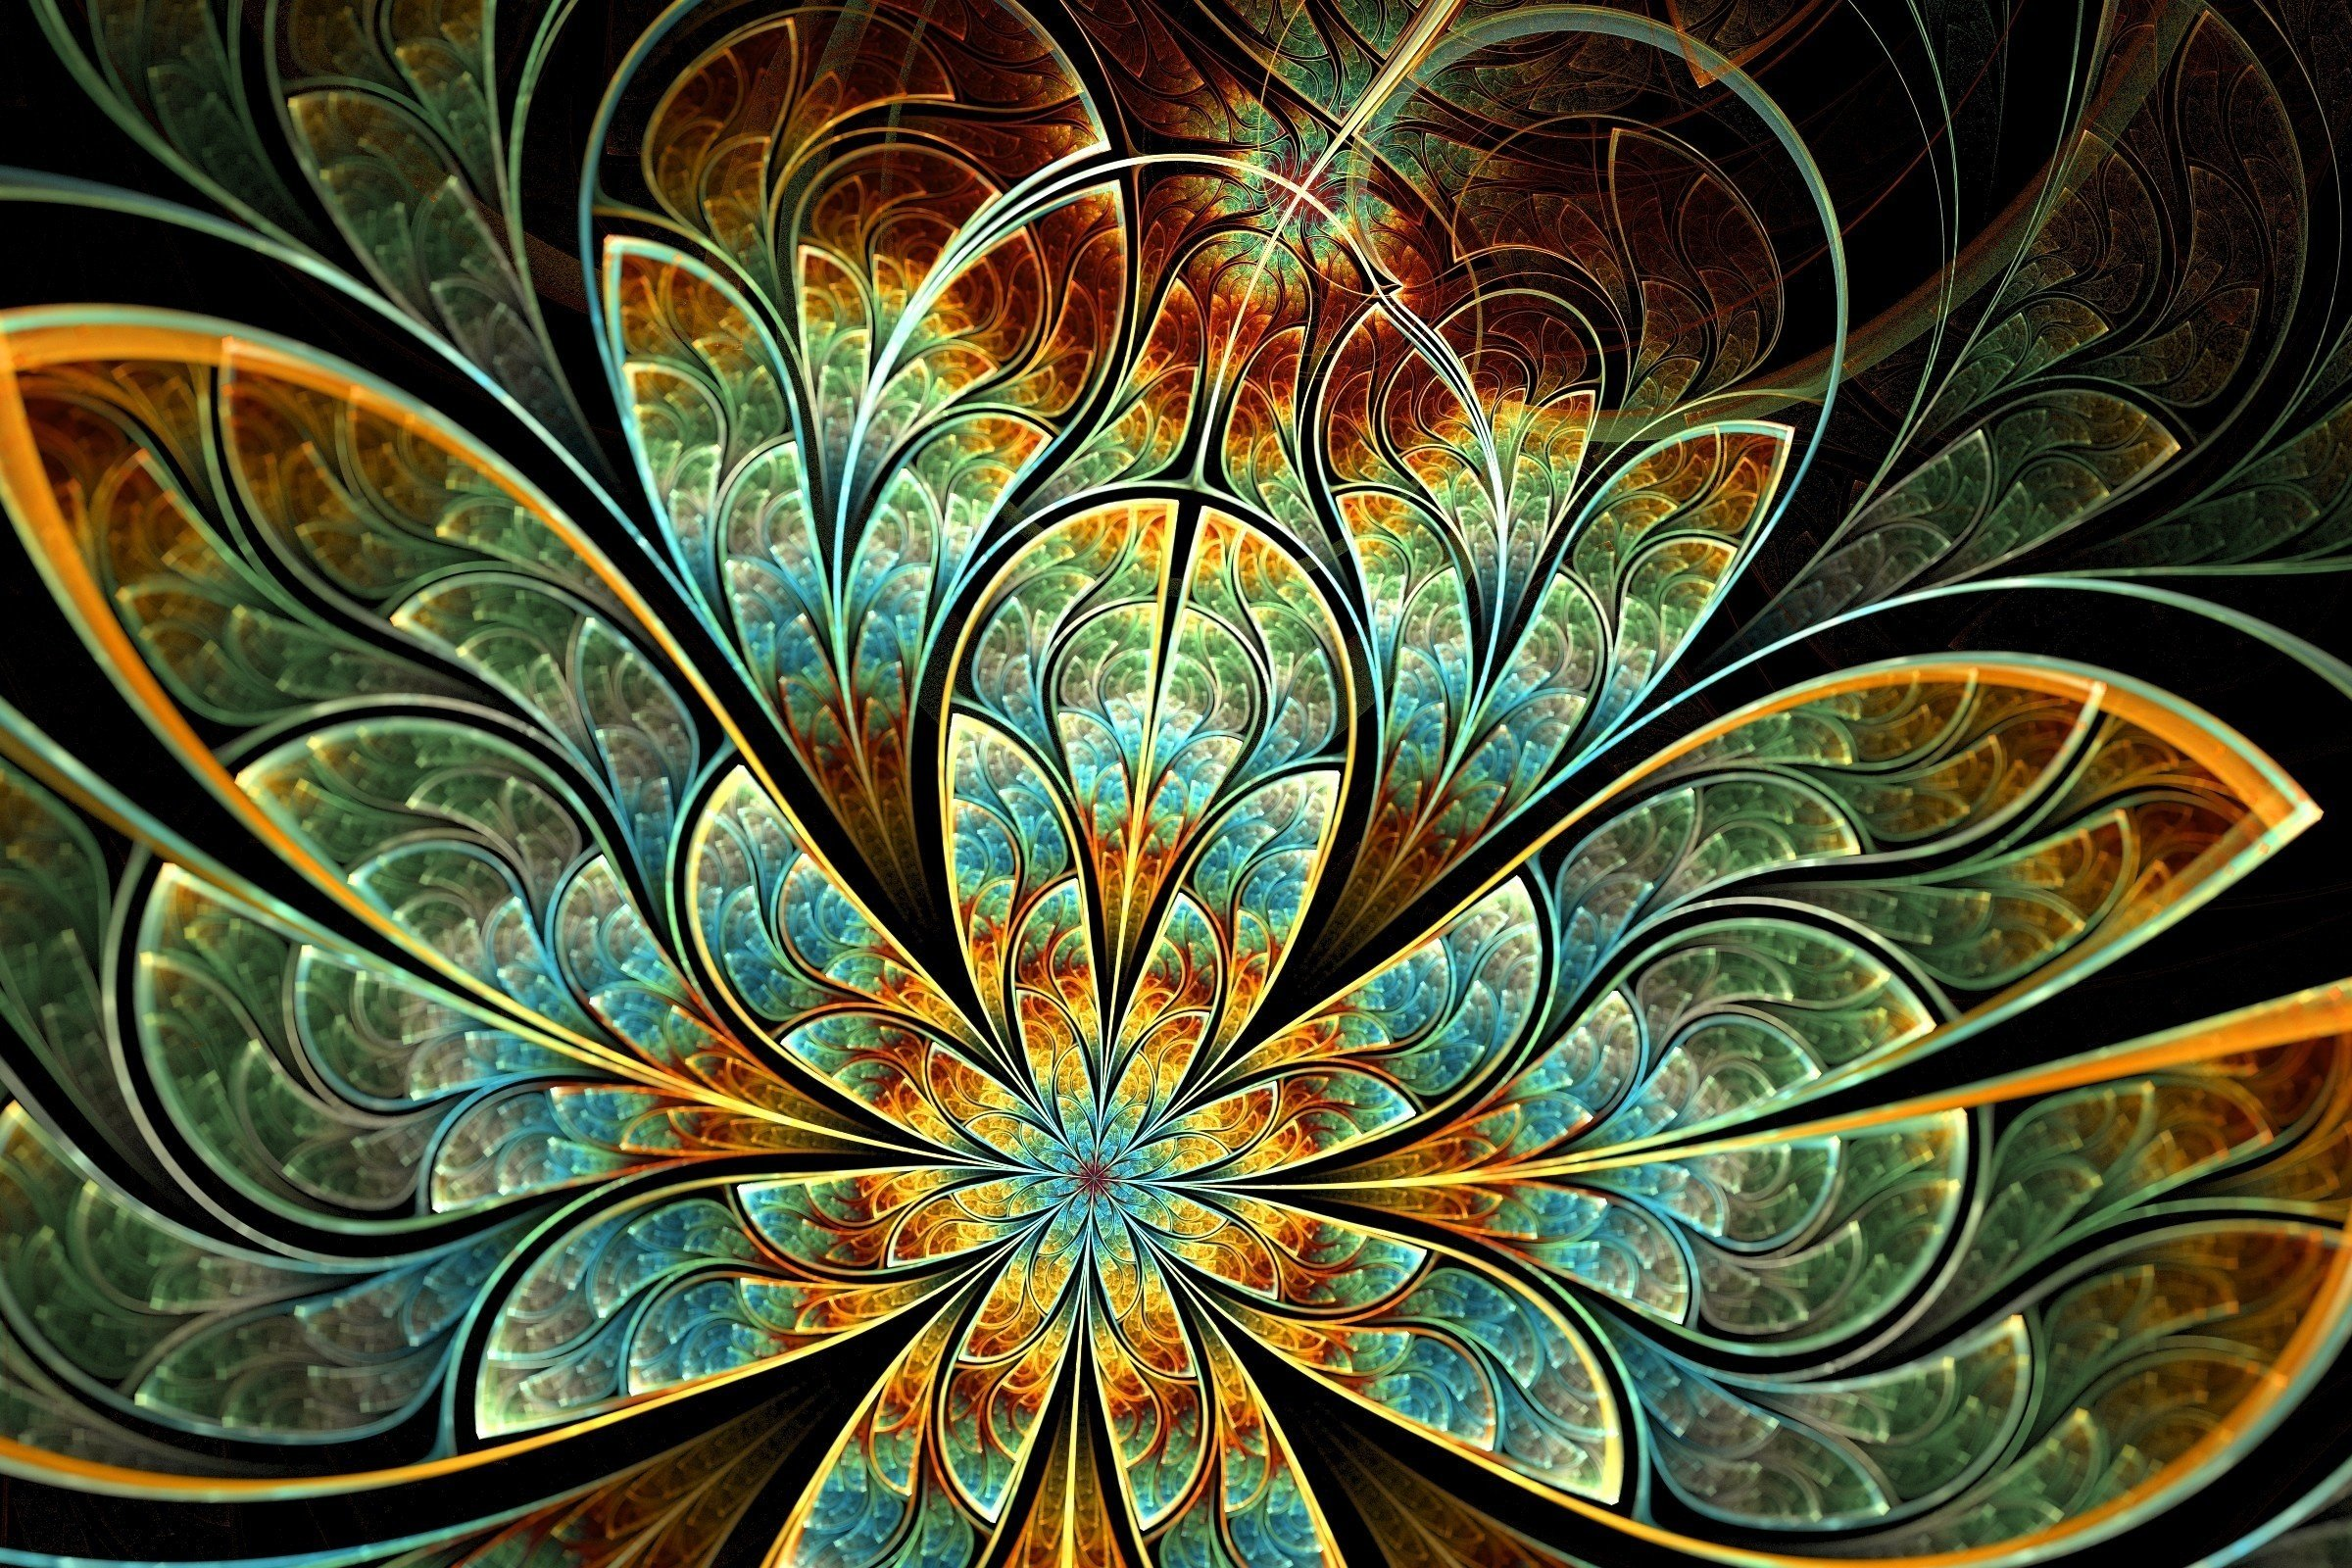 2530 Fractal HD Wallpapers Background Images 2400x1600